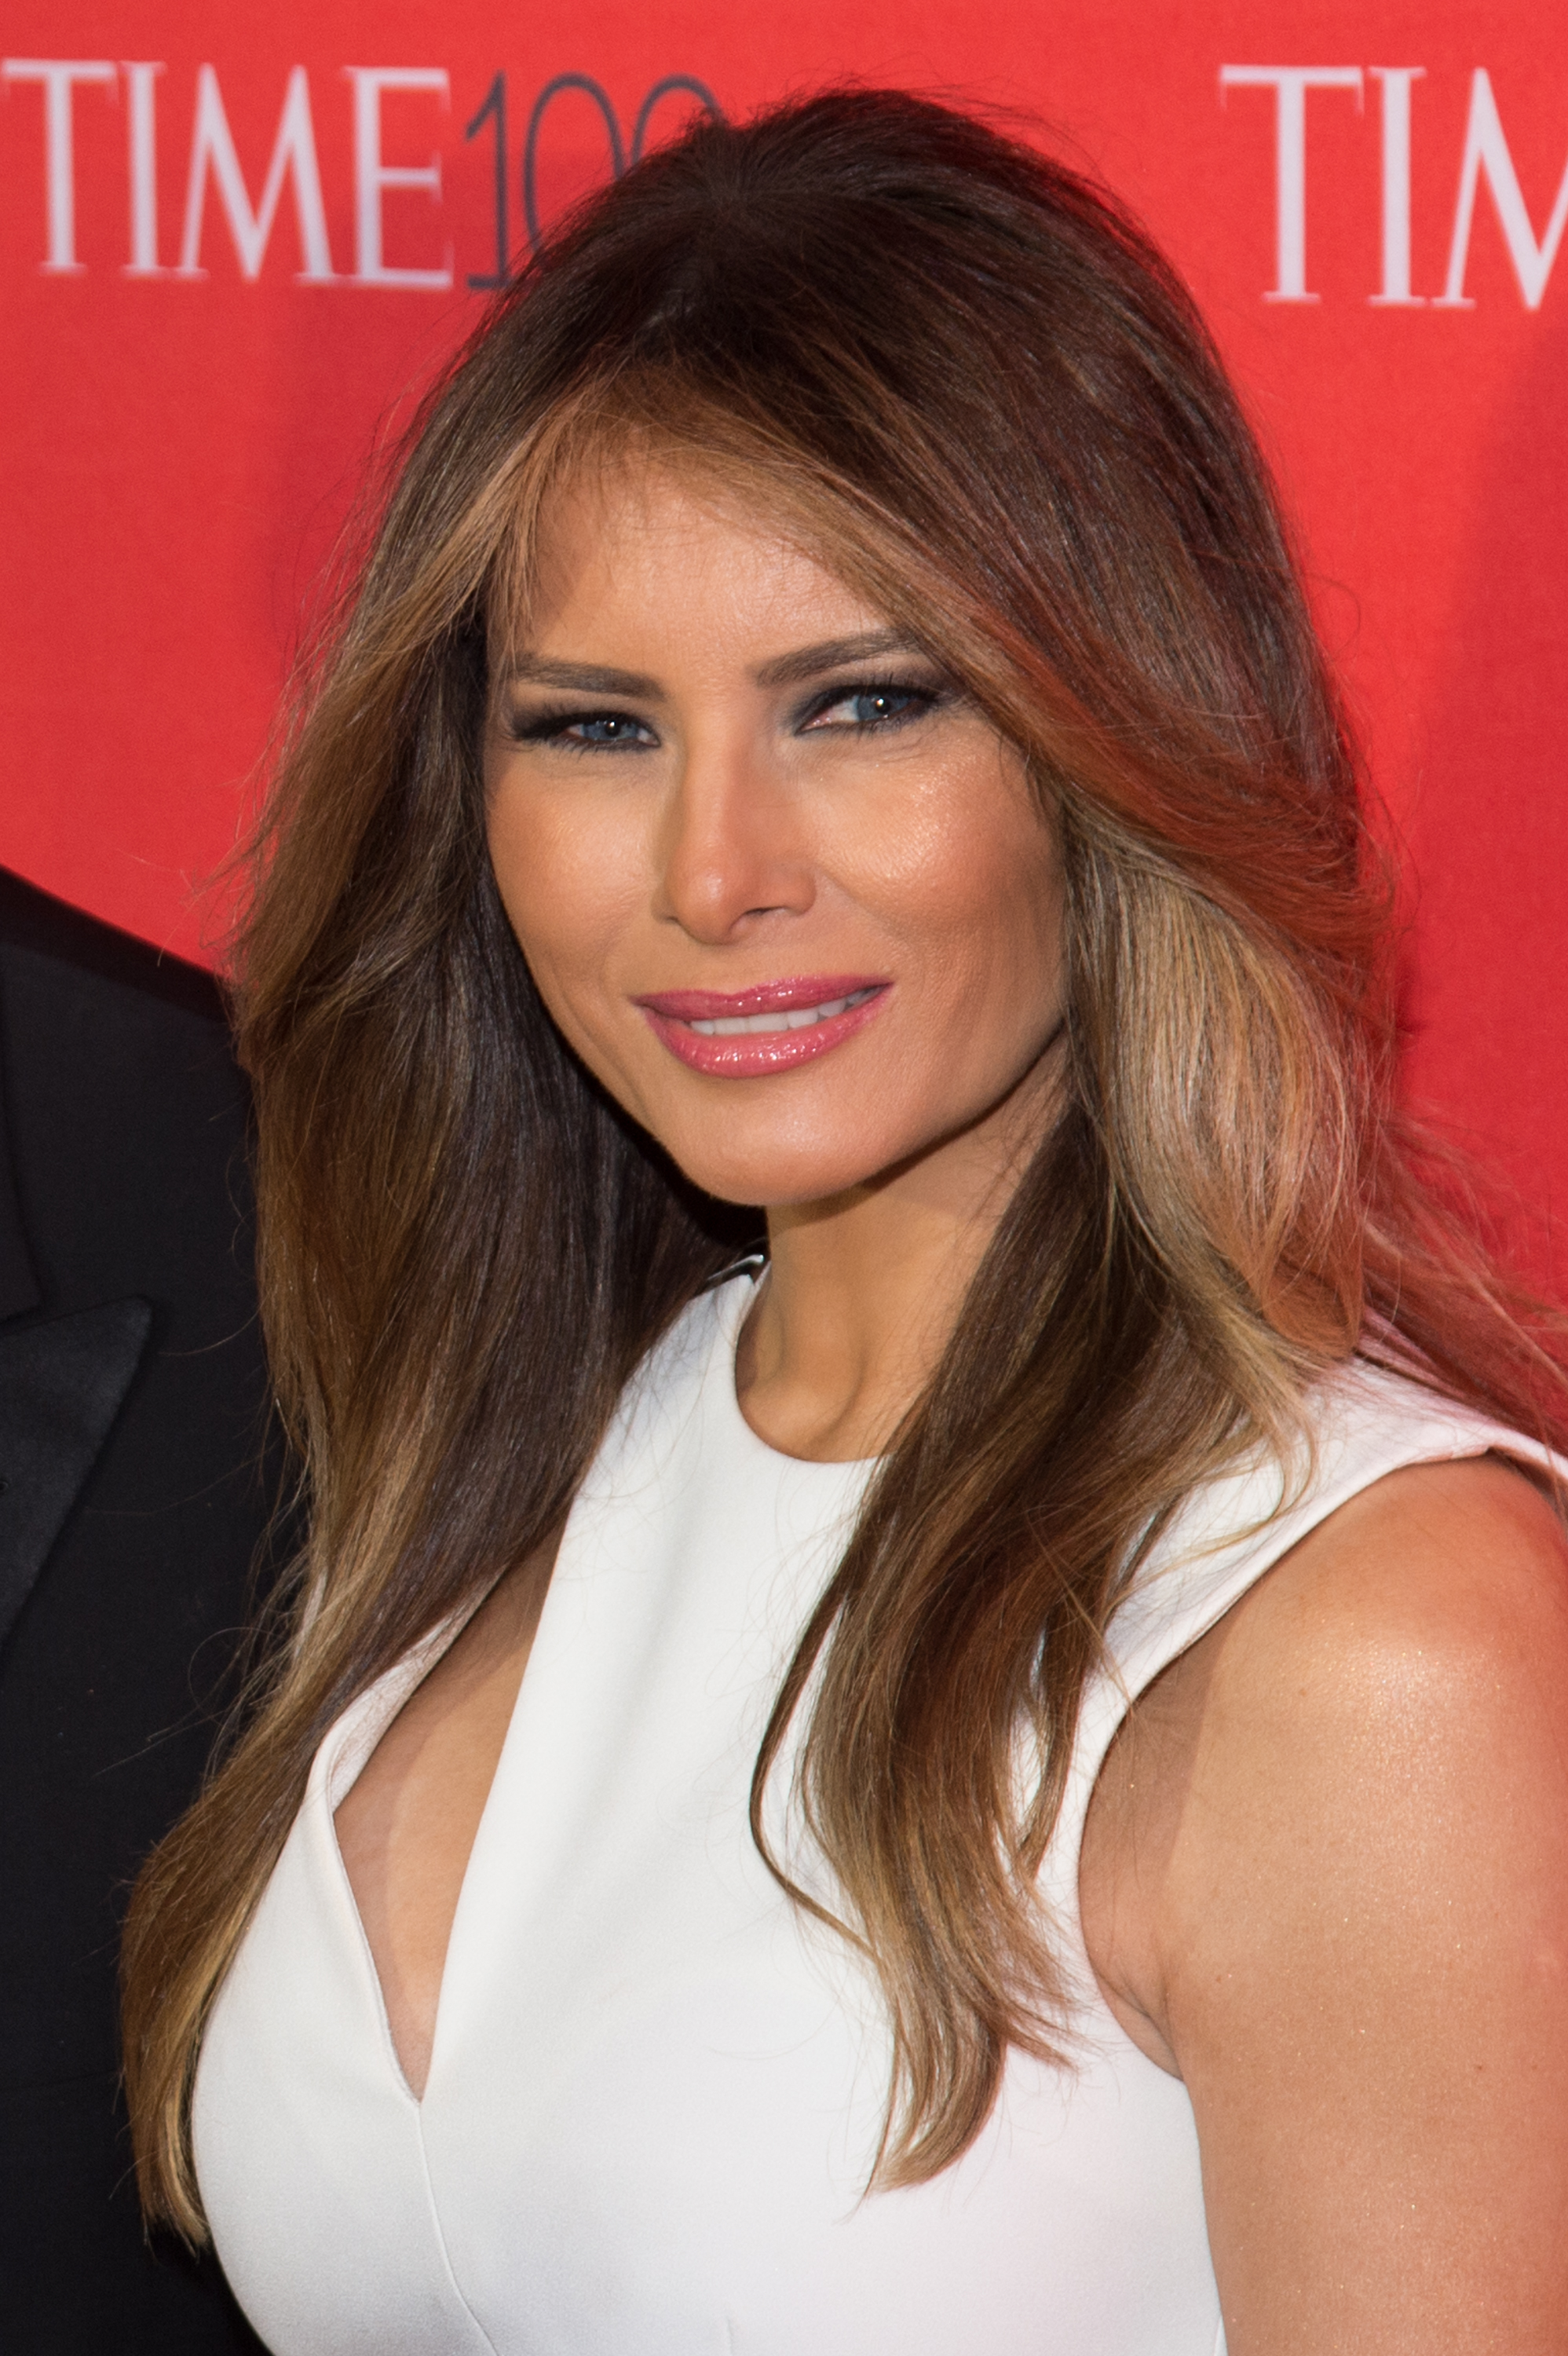 Melania Trump: How She Inspired Donald To Run For ...